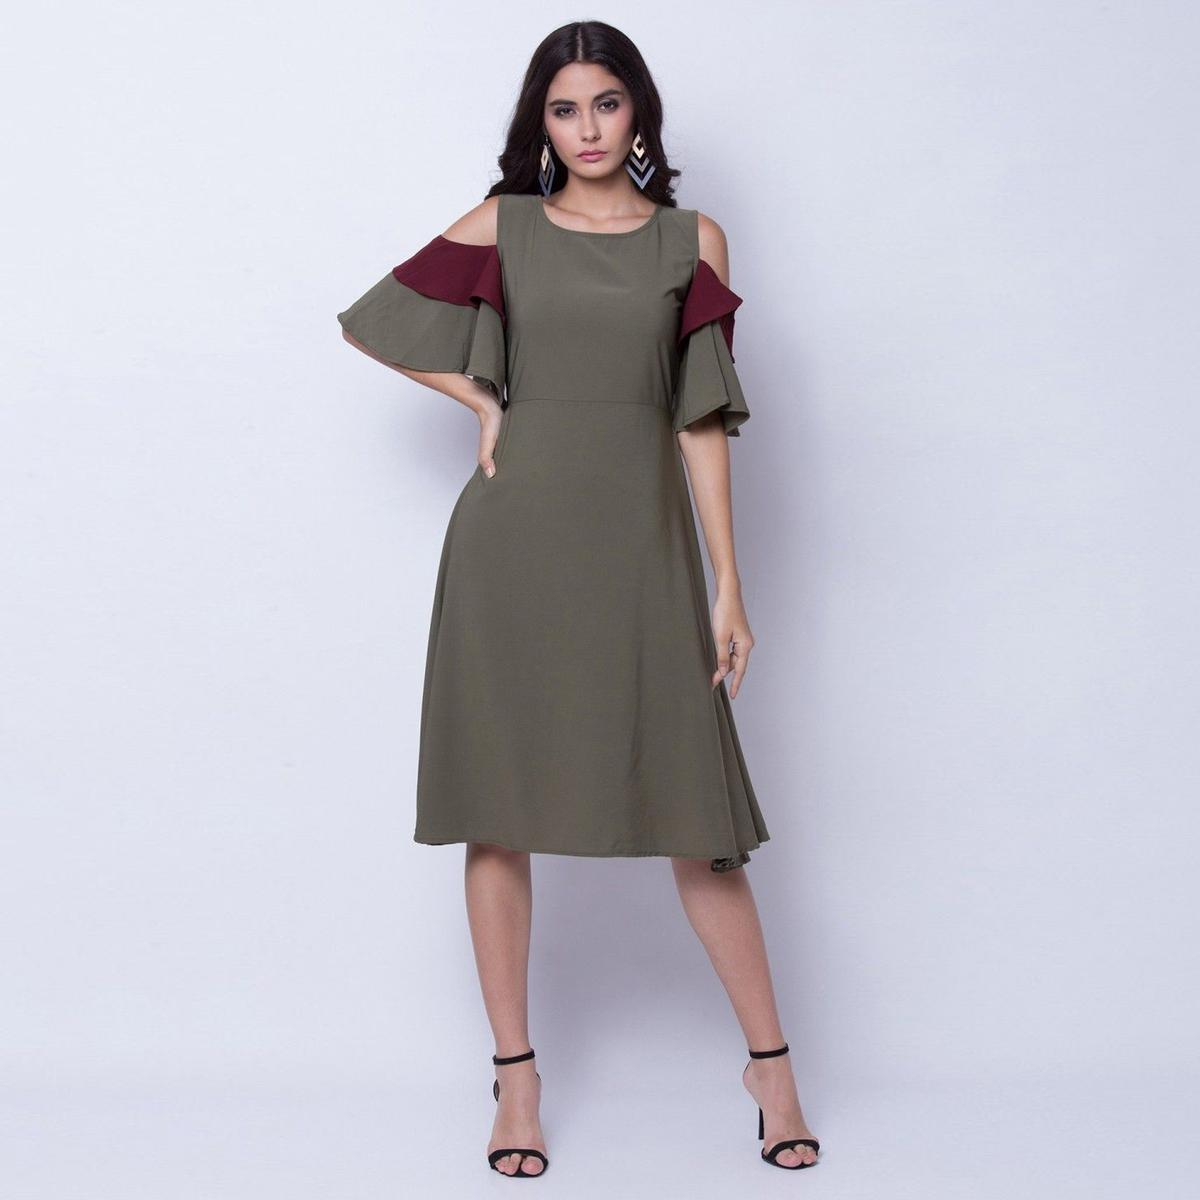 Mesmerising Green Colored Partywear Cold Shoulder Crepe A Line Dress